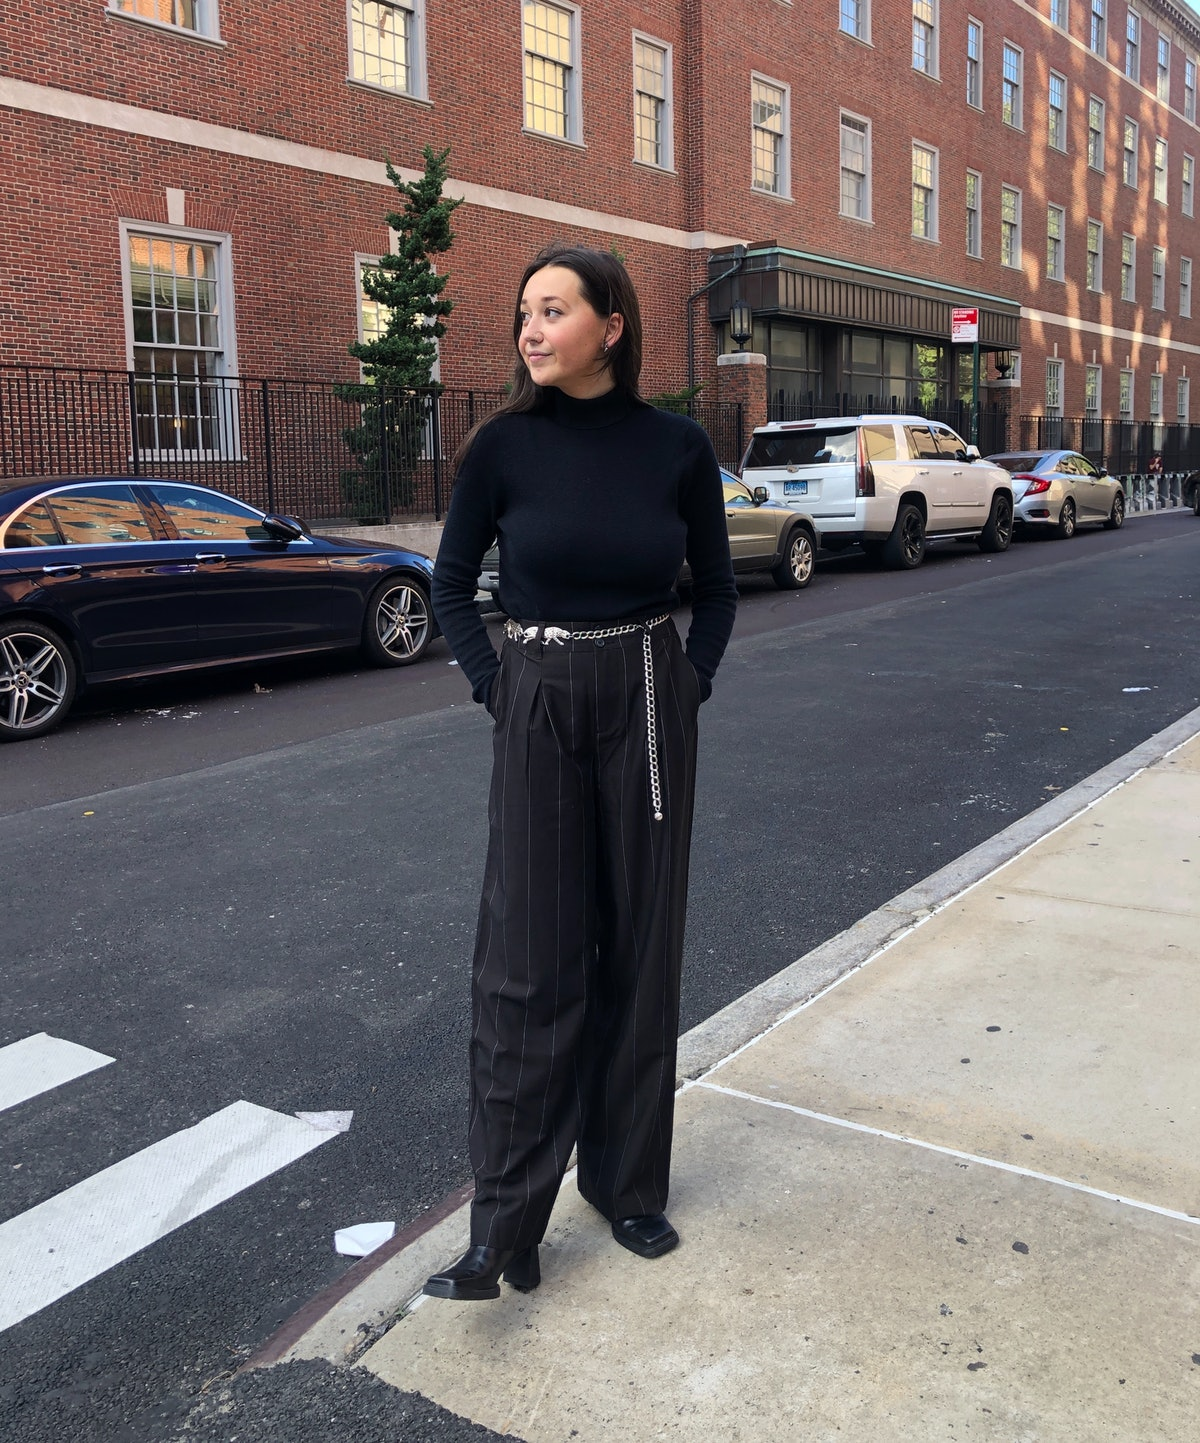 Emma Childs wears a black sweater and pinstripe trouser from Nili Lotan x Target.